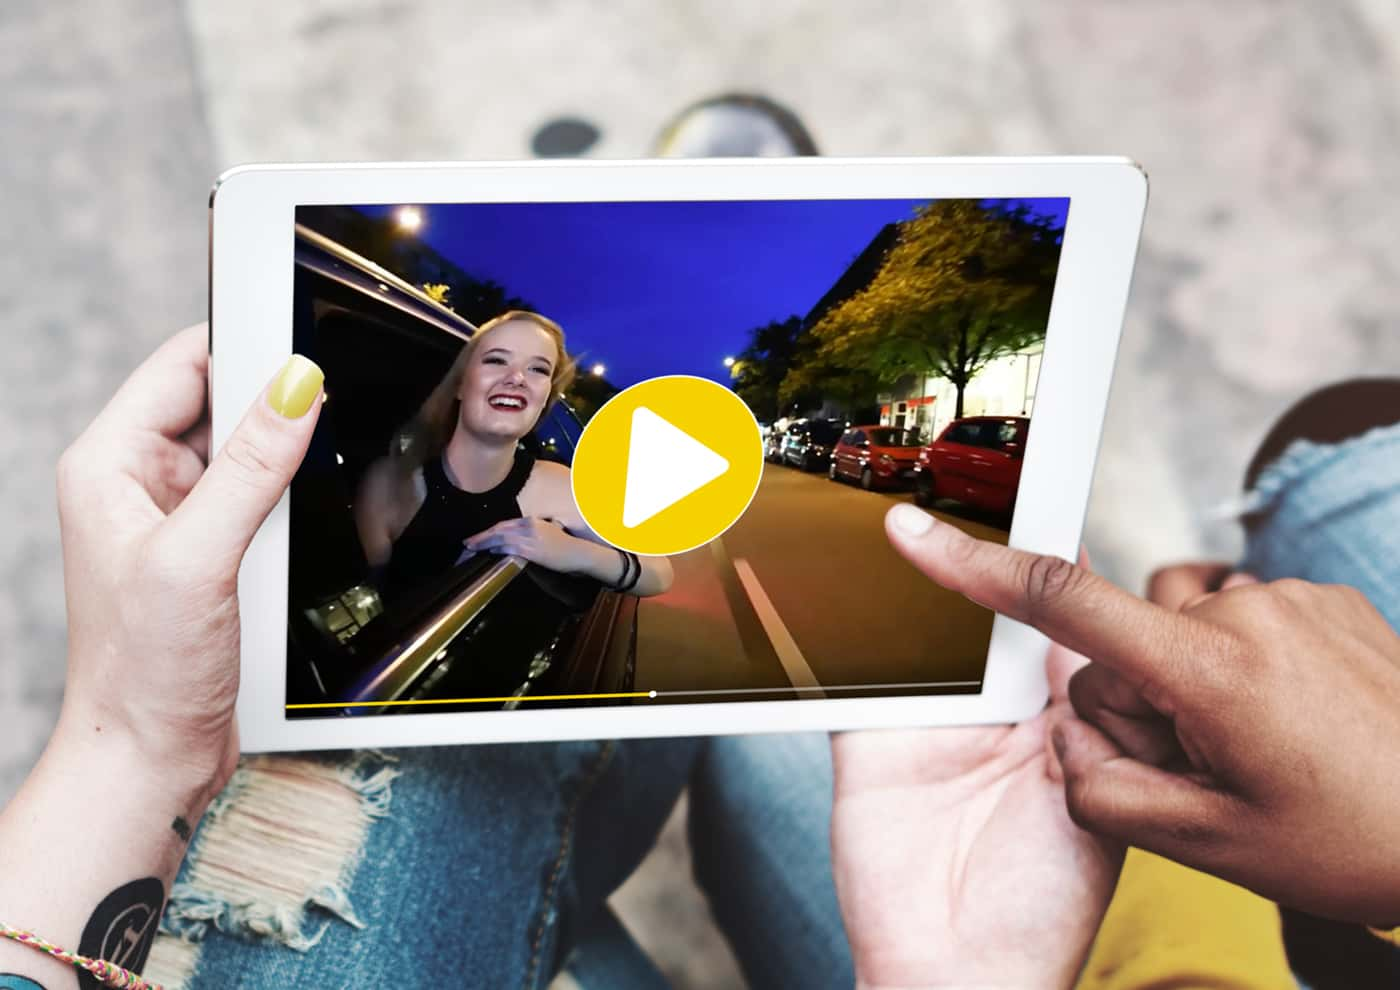 Web-Relaunch und Corporate Design für Taxi Kiel: Video